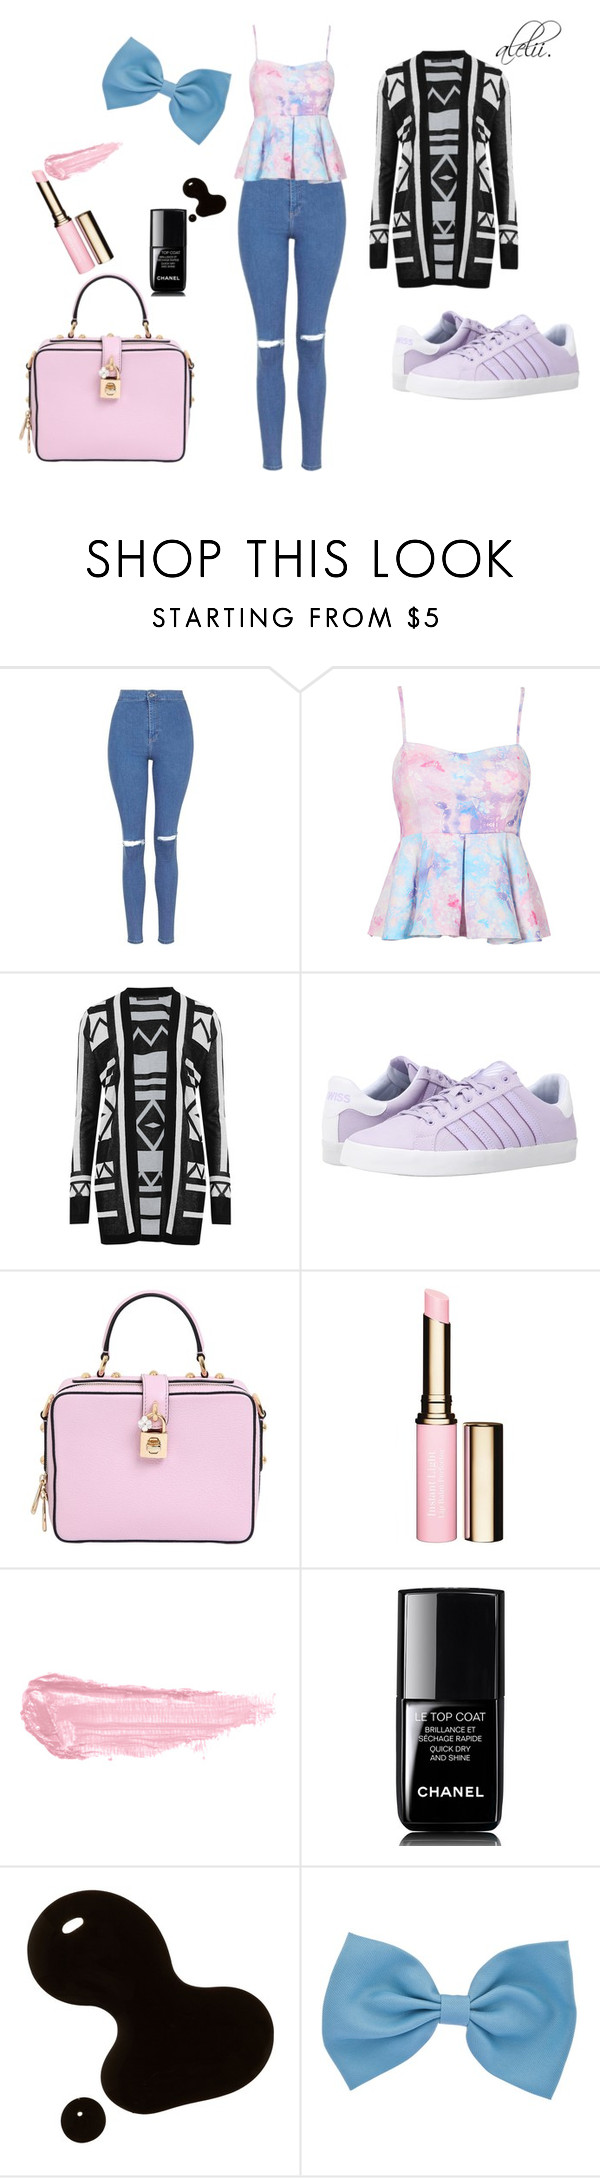 """look in pastel colors."" by alejandralilithg on Polyvore featuring Topshop, M&S Collection, K-Swiss, Dolce&Gabbana, Clarins, By Terry and Chanel"